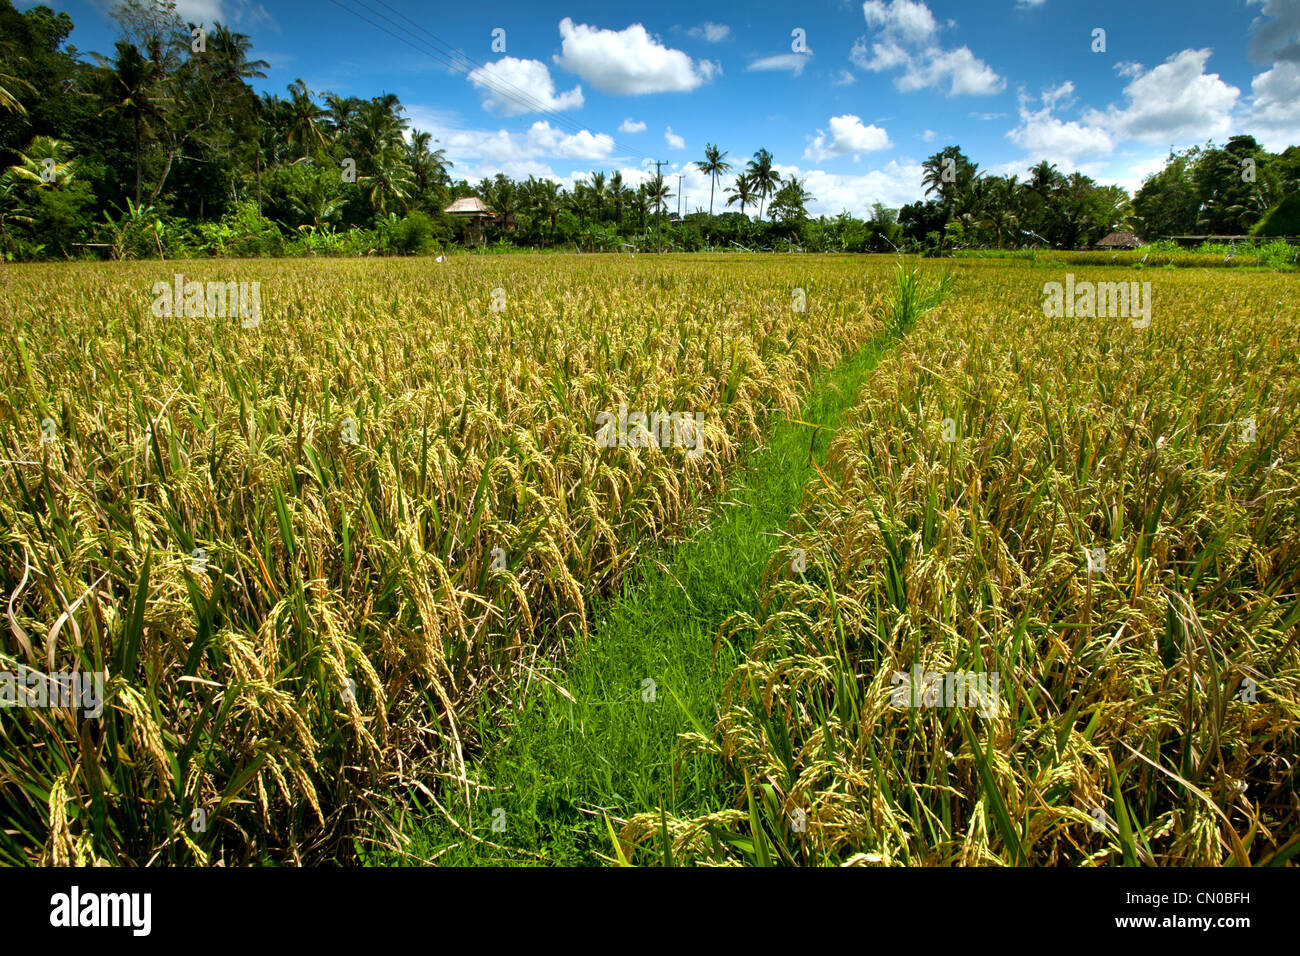 Rice field at Ubud, Bali, Indonesia. - Stock Image